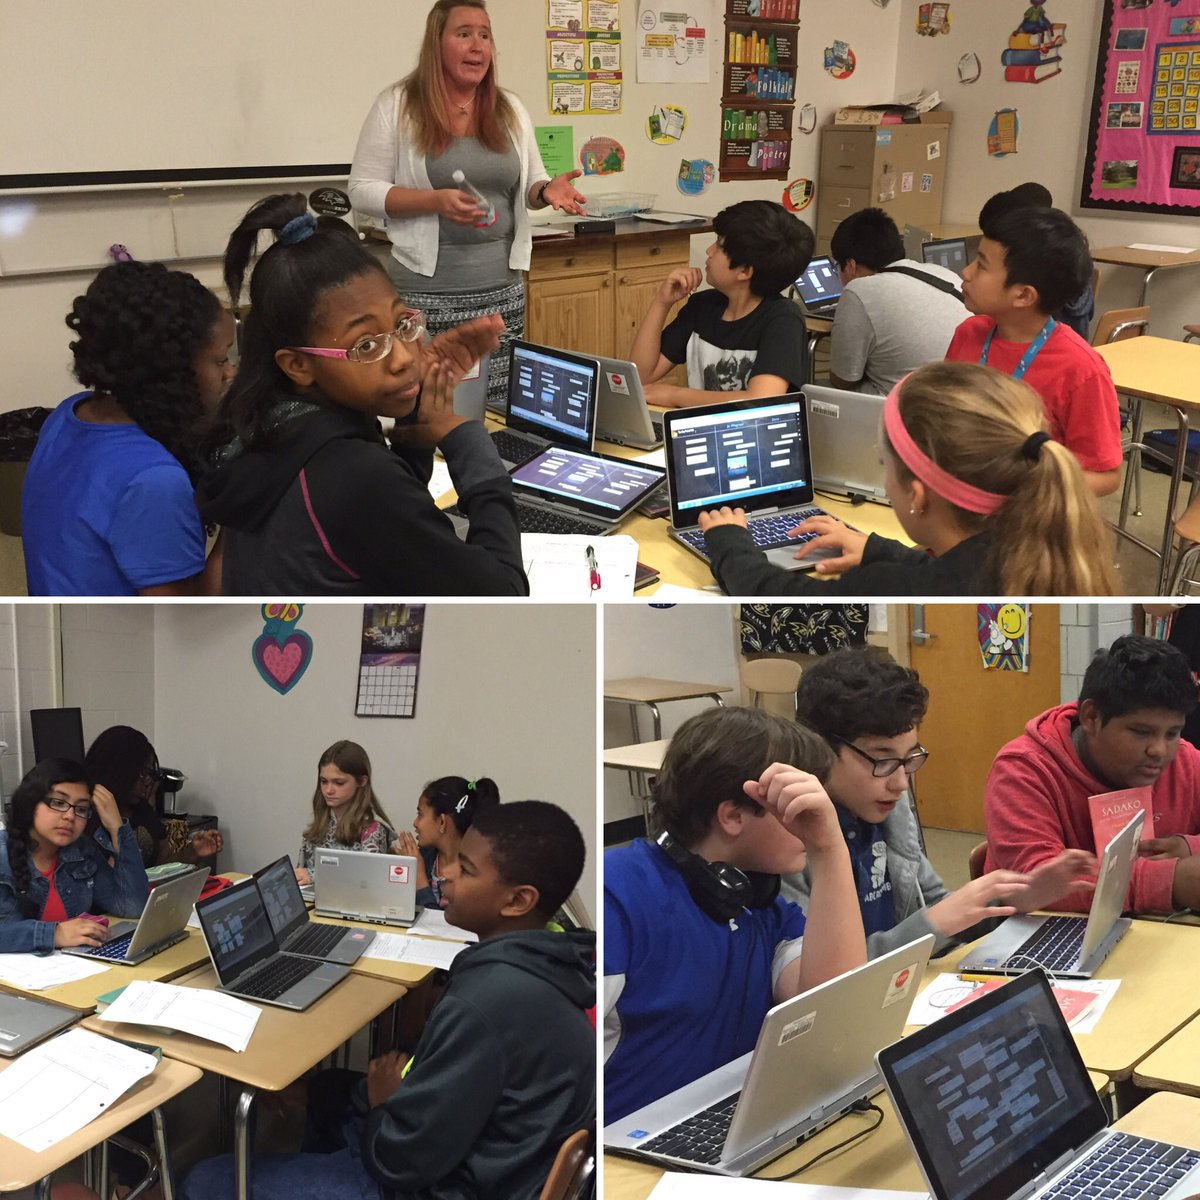 Self-selected groups collaborate & curate using @padlet to create graphic novels @DrPenK #bcpslh https://t.co/YOZIWdqQNA